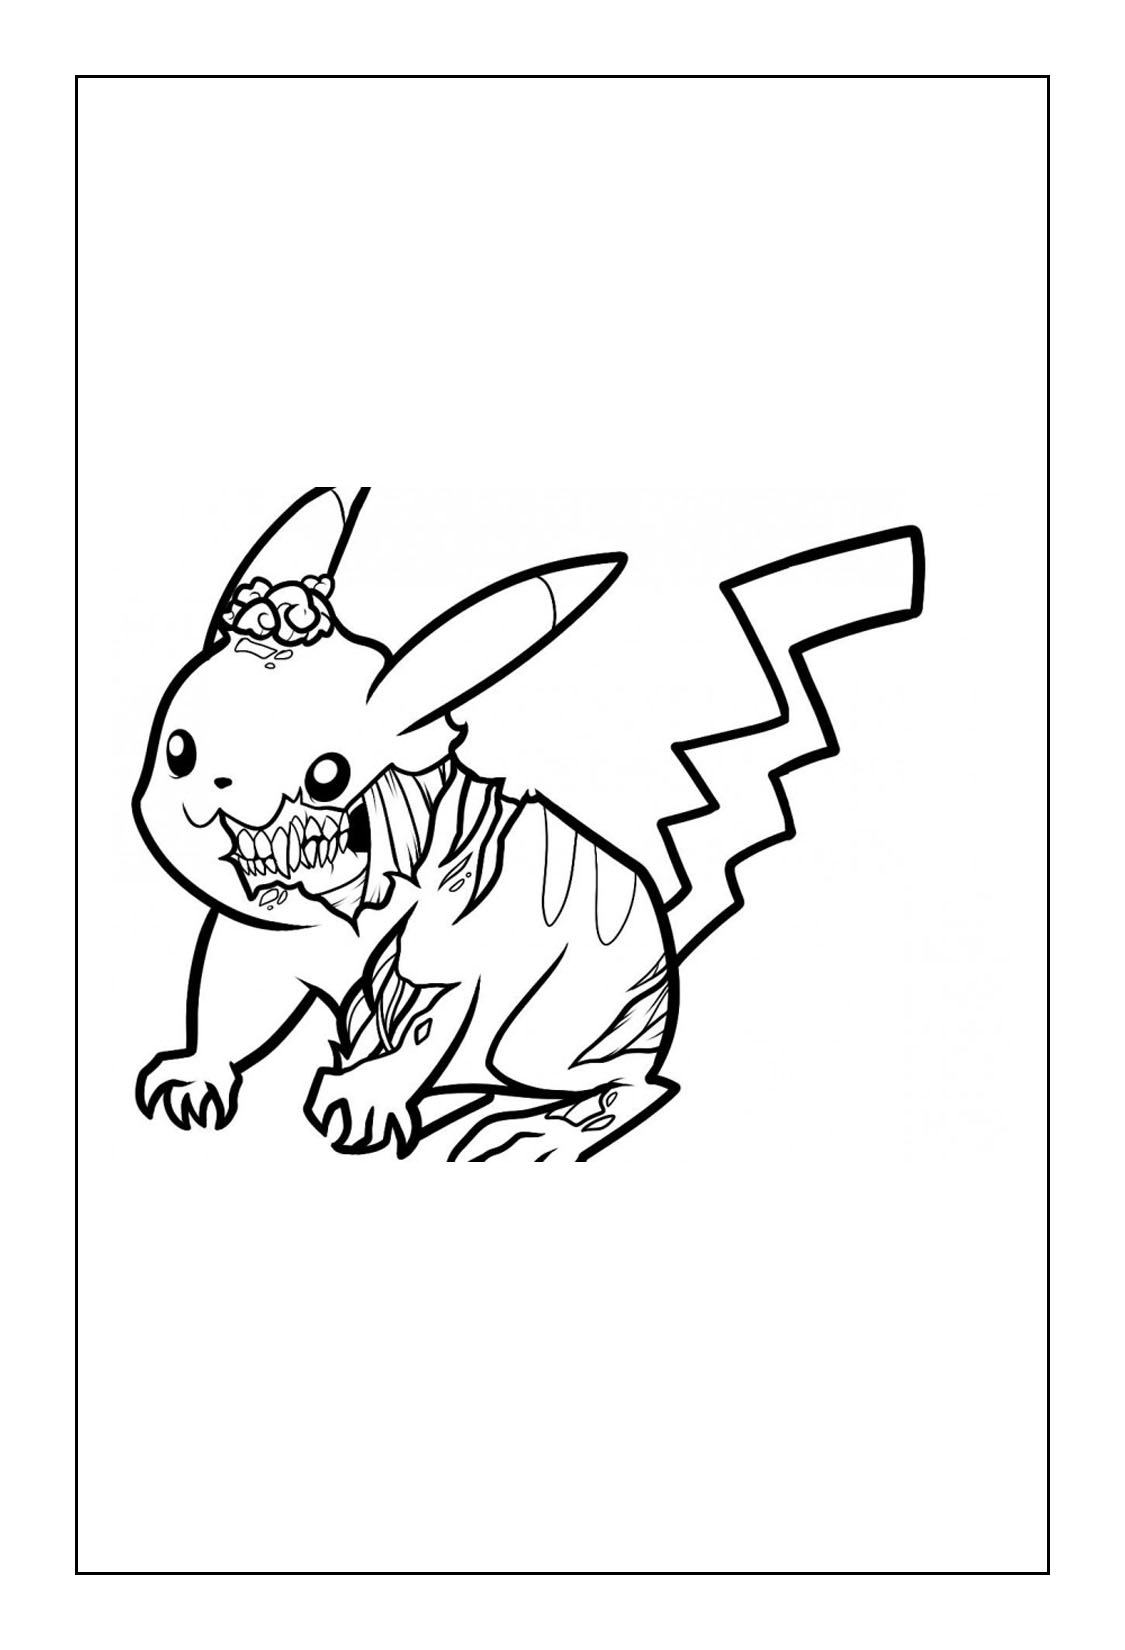 Pikachu Coloring Pages Coloring Cks